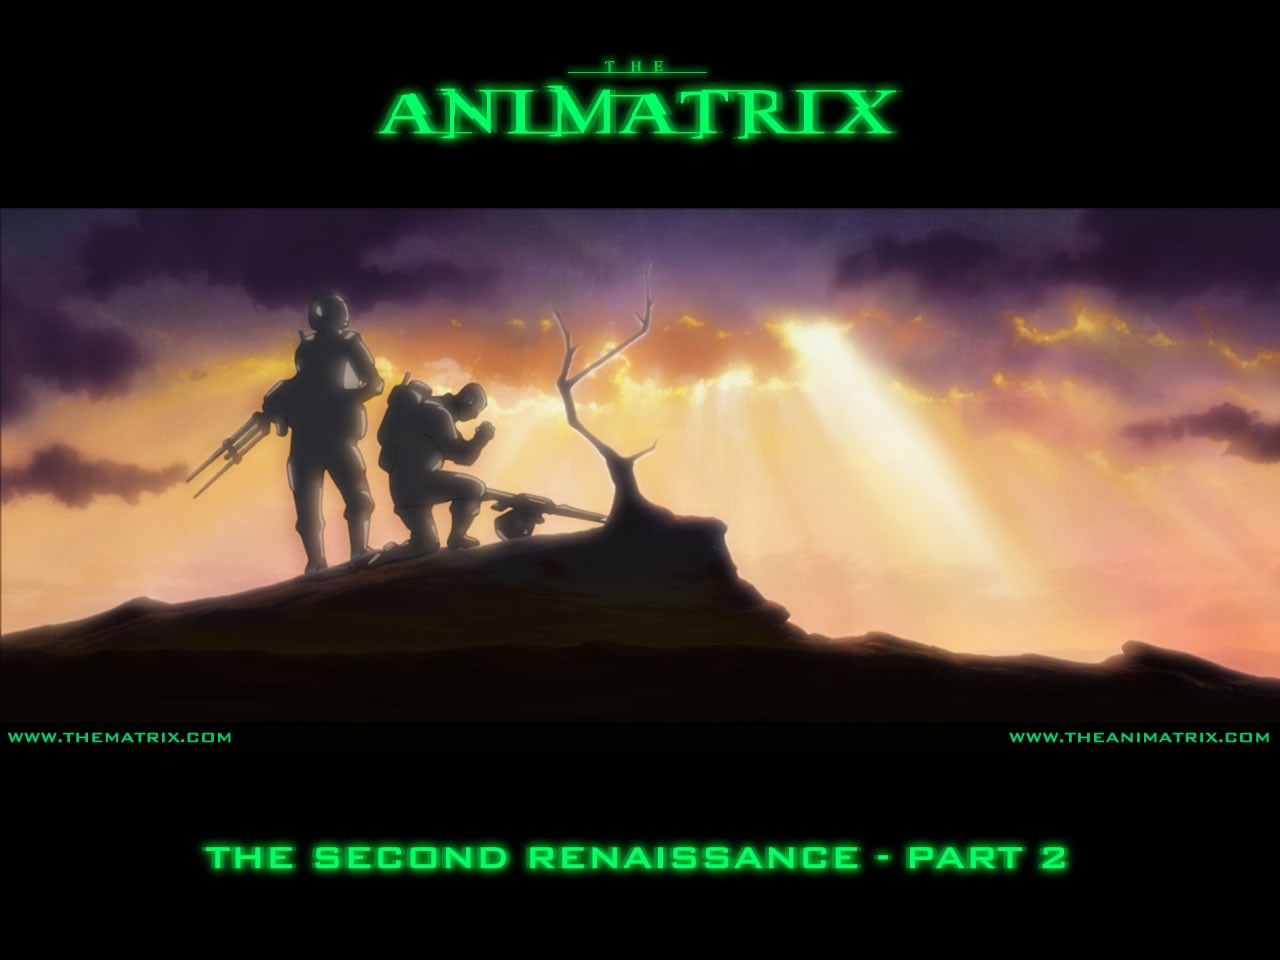 Un wallpaper dell'episodio 'The Second Renaissance, Part 2' di Animatrix